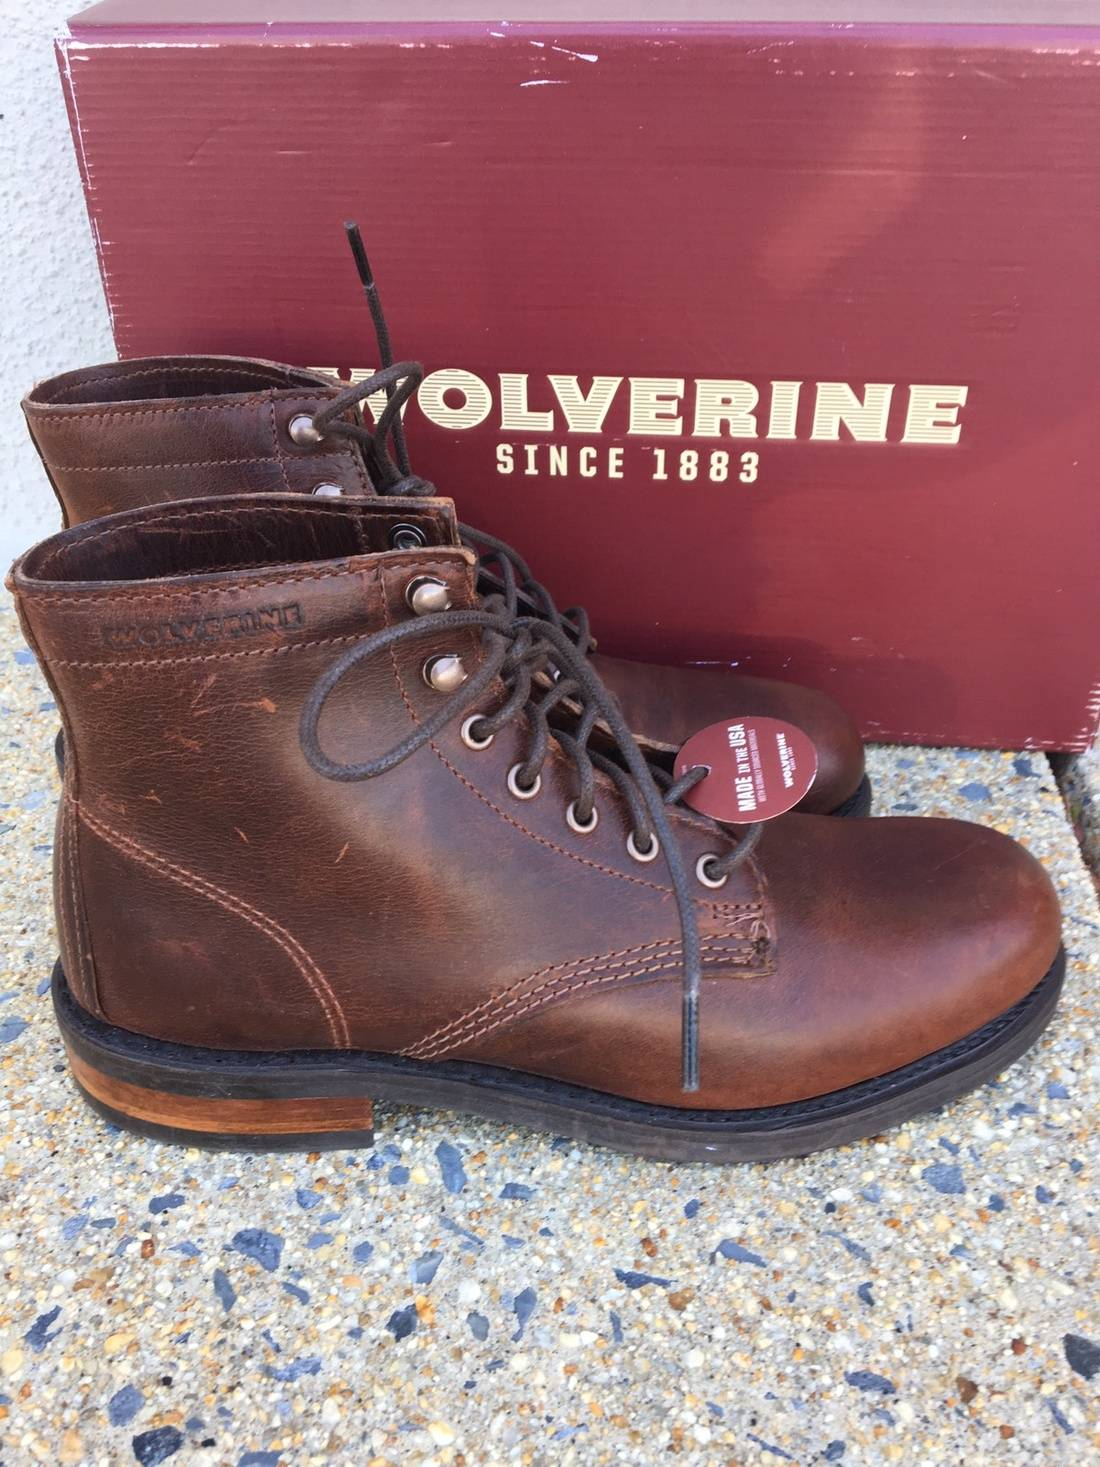 wolverine 250 kilometer boots new in box size 7 boots for sale